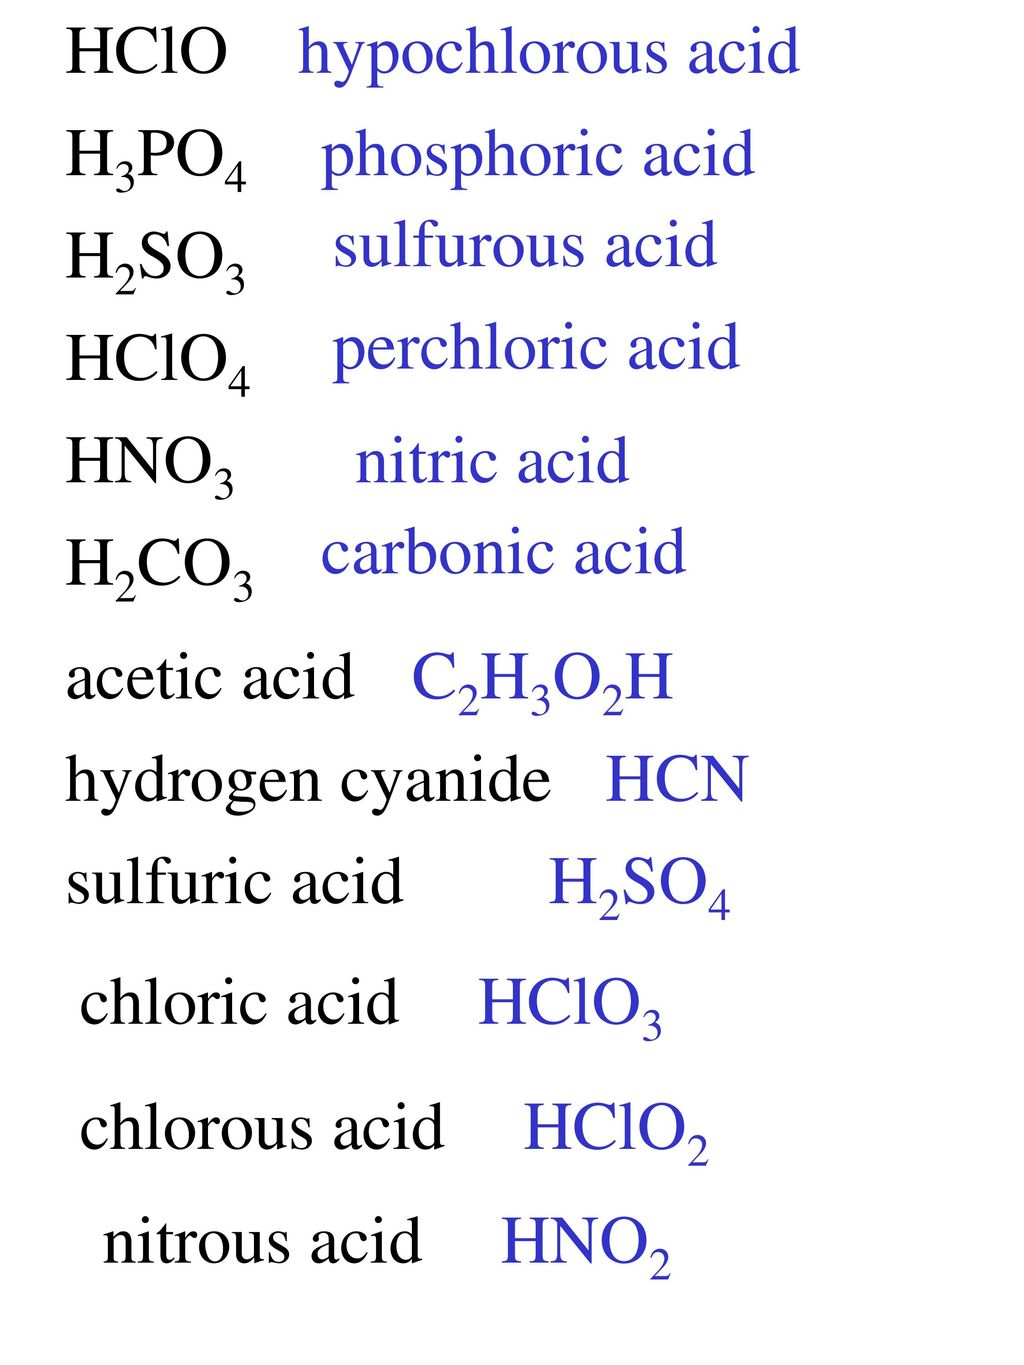 H2co3 Molecular Geometry : h2co3, molecular, geometry, These, Acids., C2H3O2H, Acetic, H2CO3, Carbonic, Download